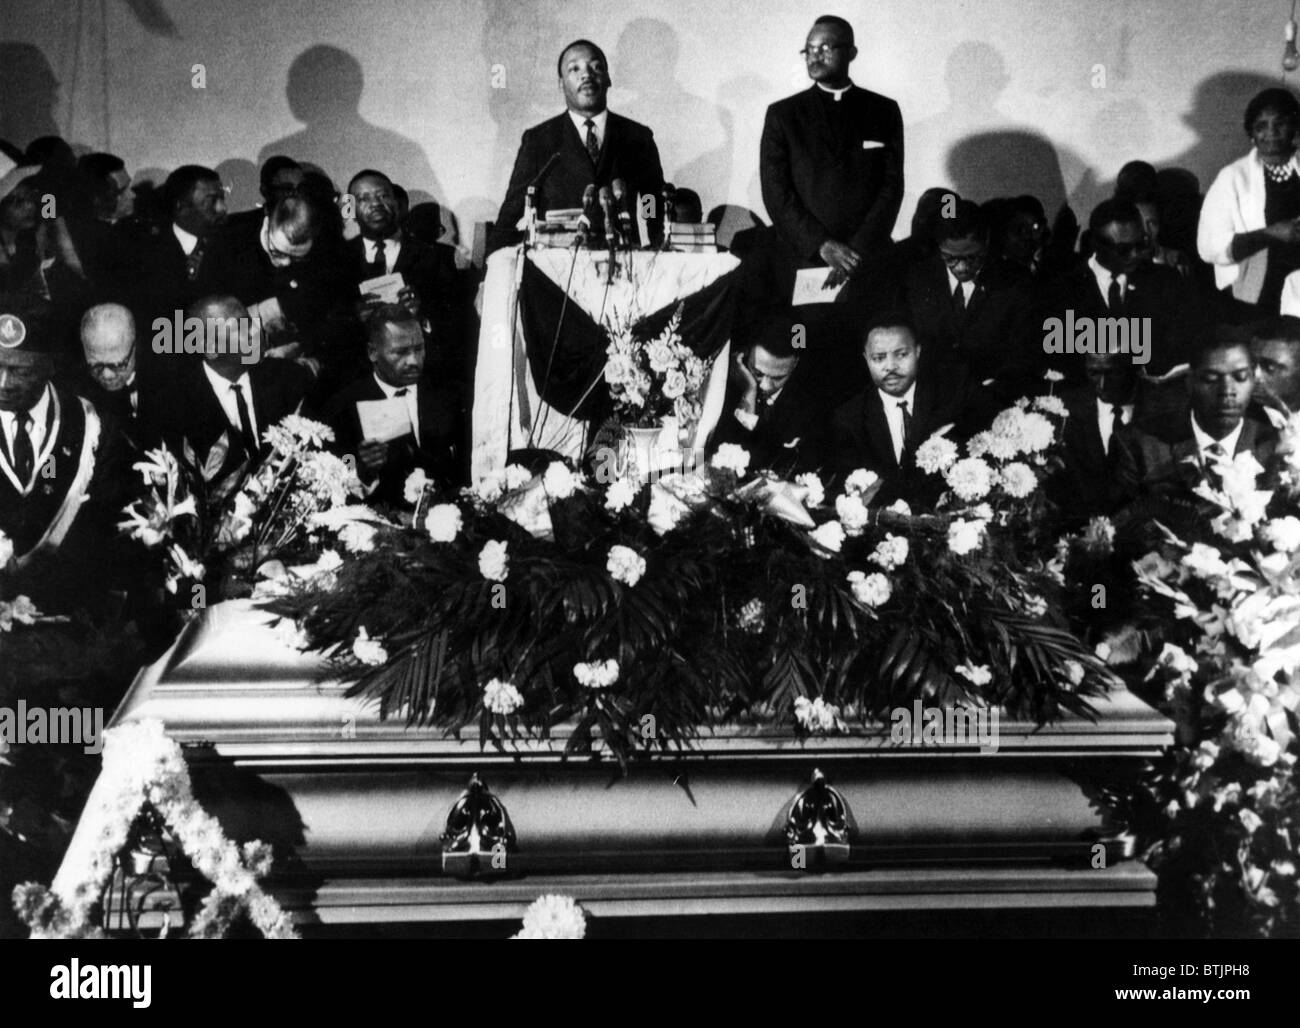 Martin Luther King Jr Center Standing Giving A Eulogy For